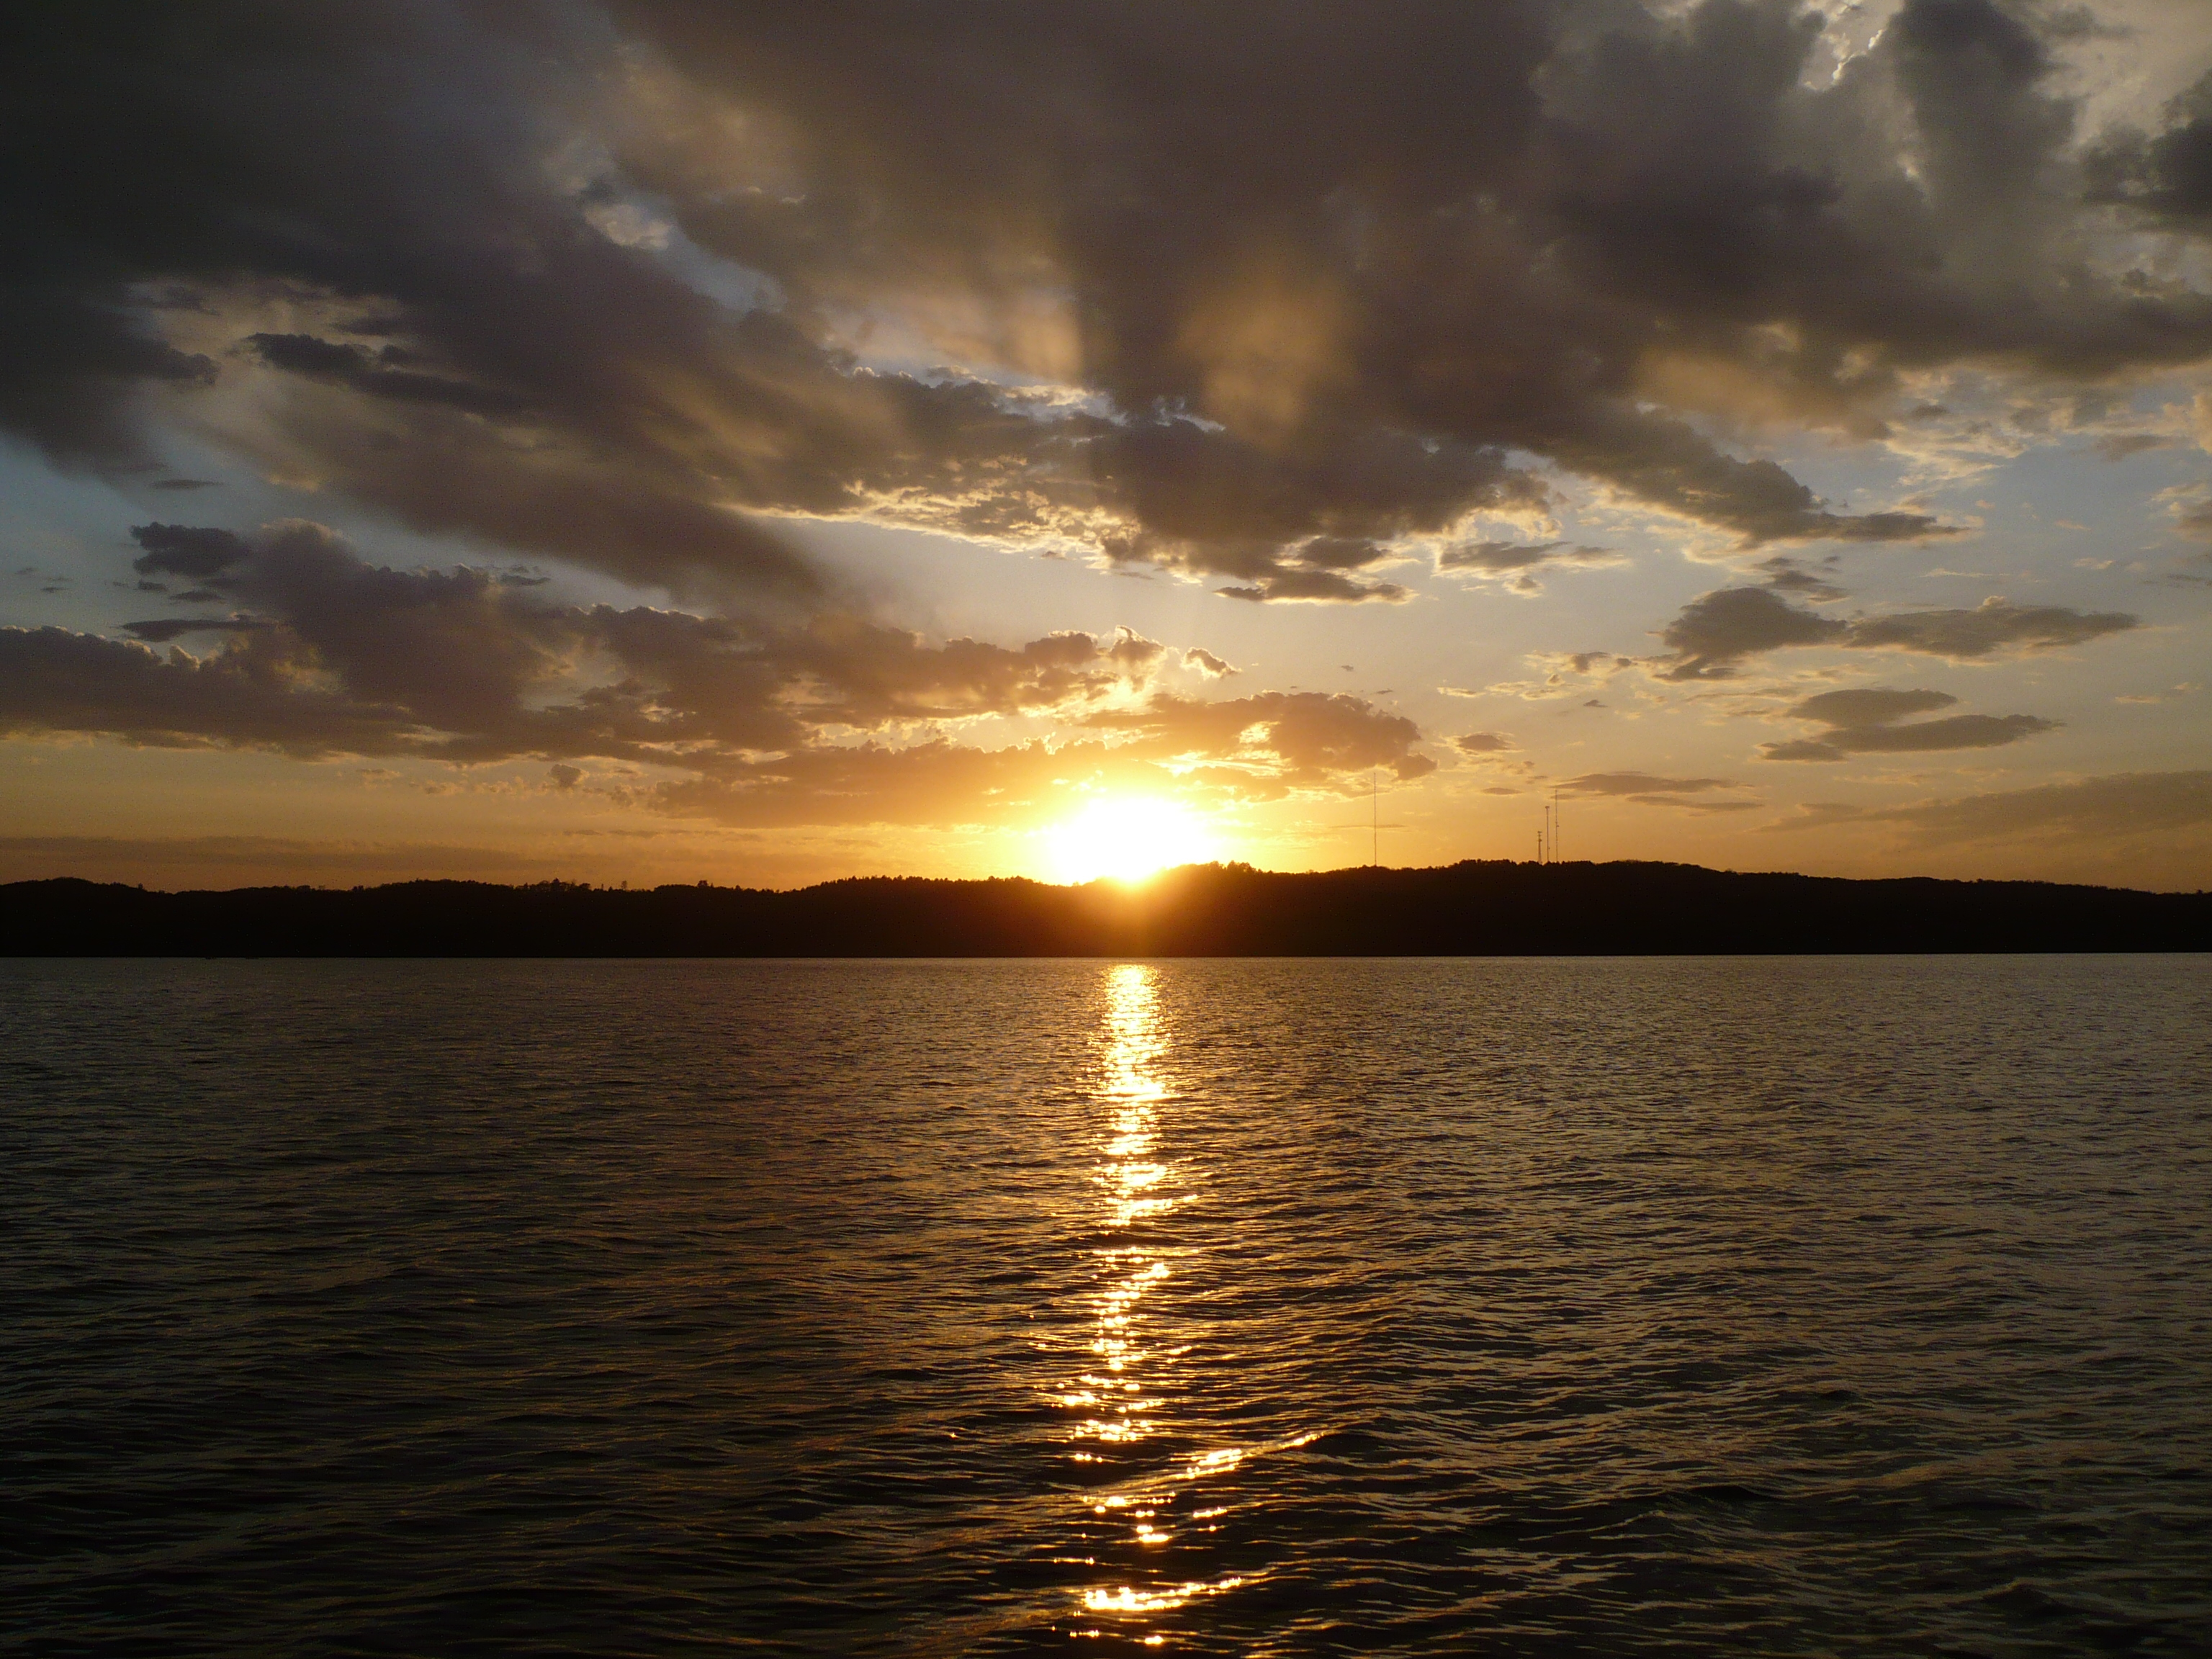 Gull_Lake_sunset.JPG